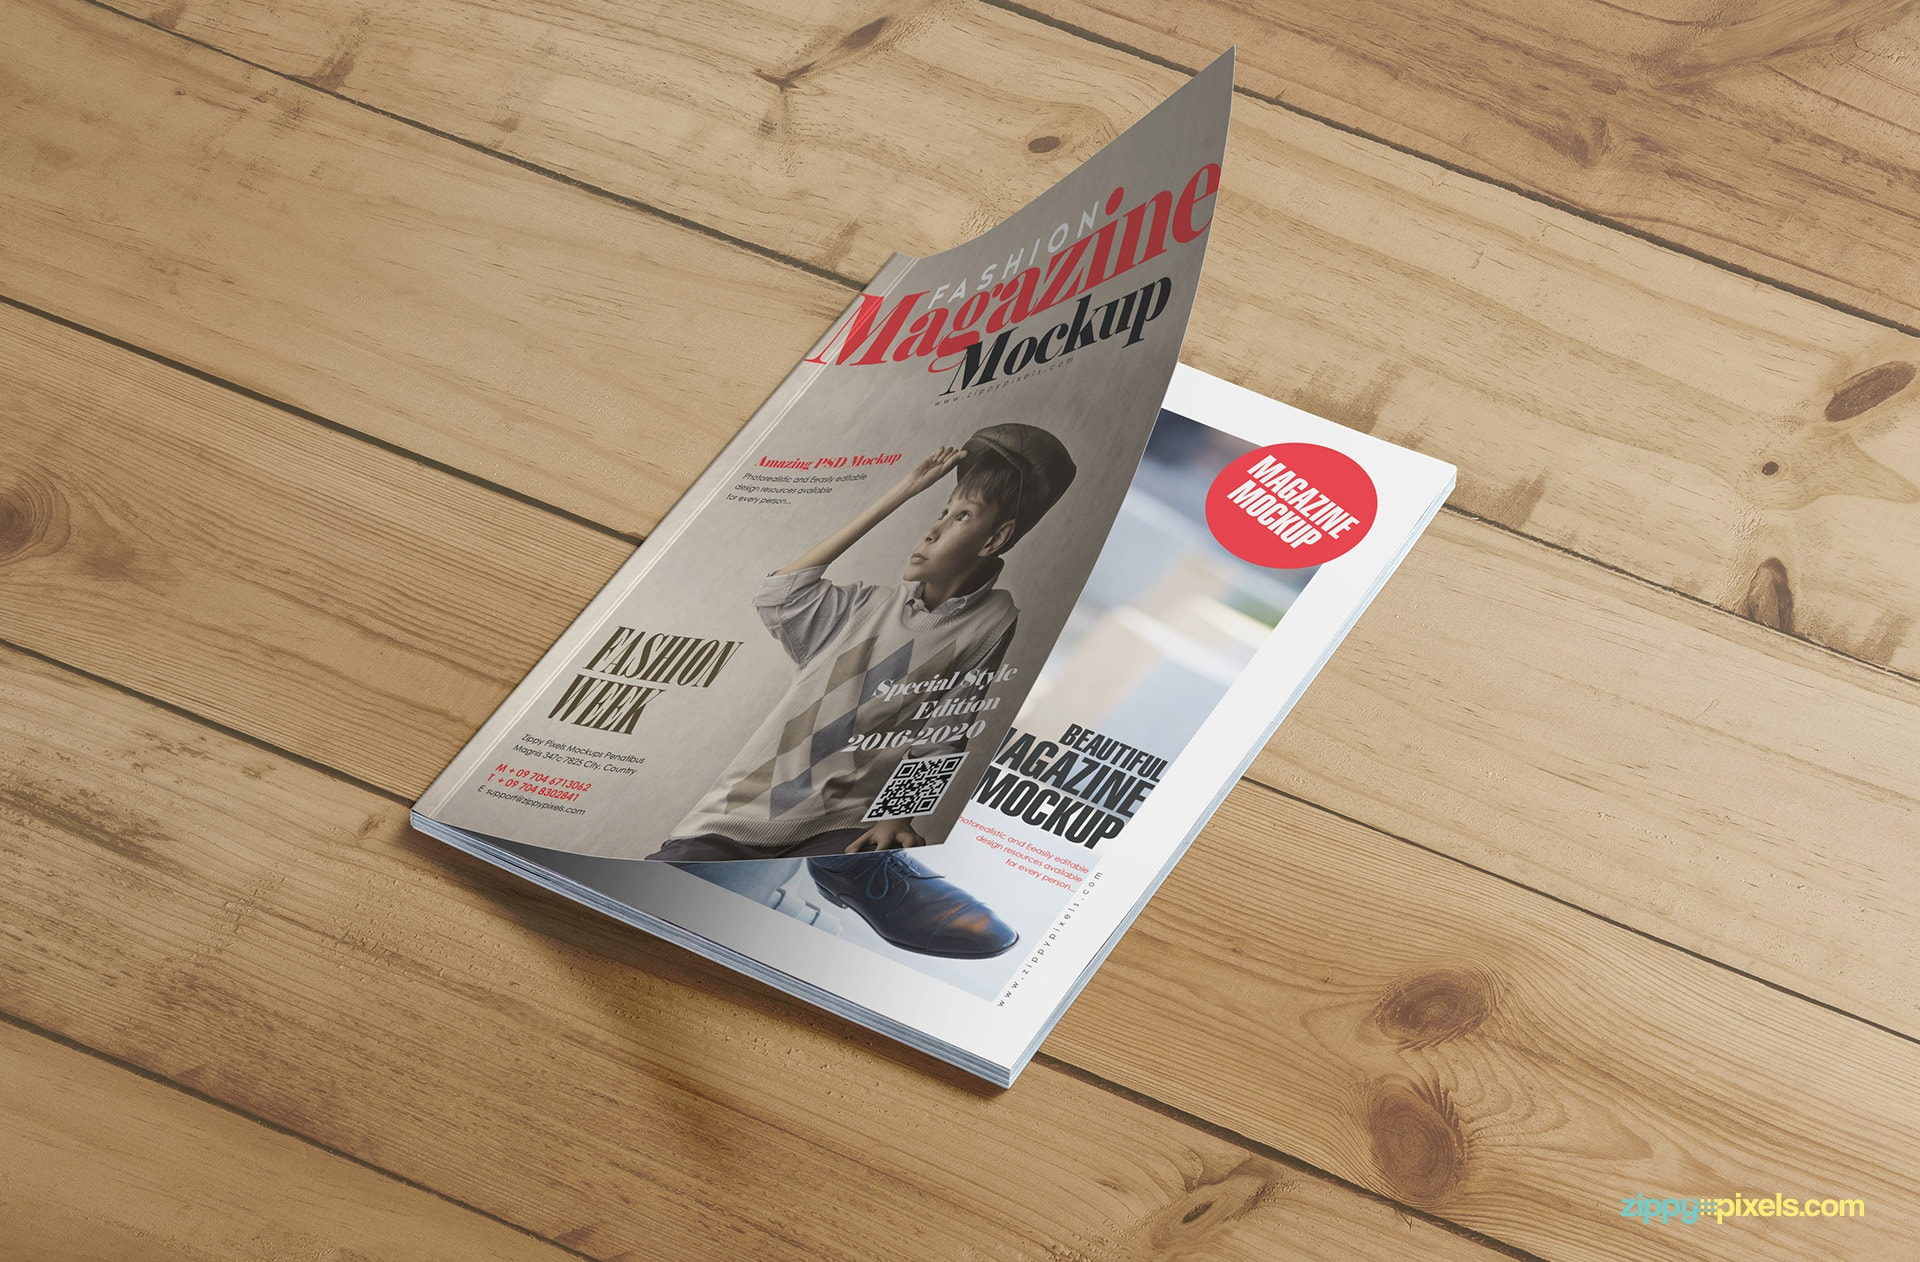 high quality magazine mockups for image based designs